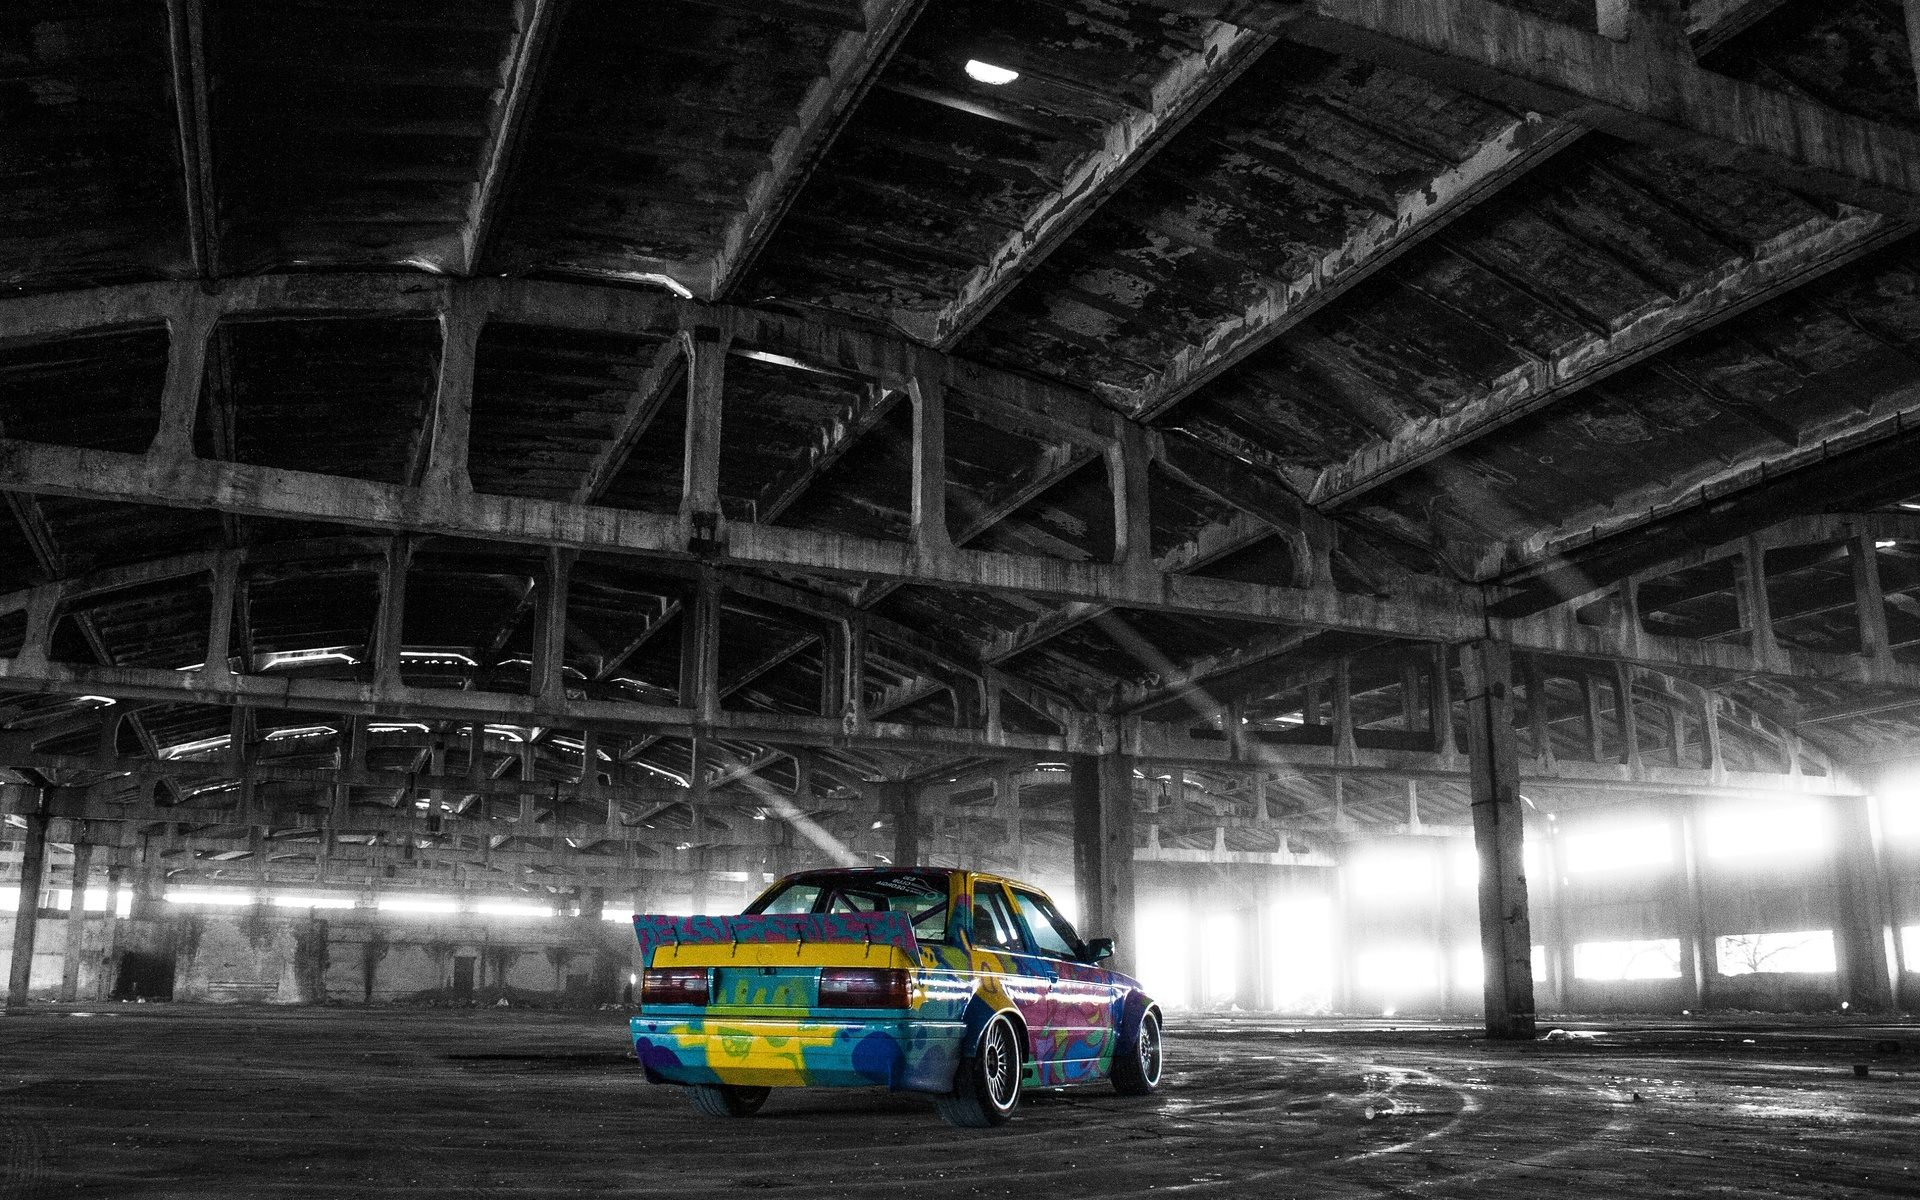 Bmw E30 Wallpapers Archives Page 2 Of 2 Hd Desktop